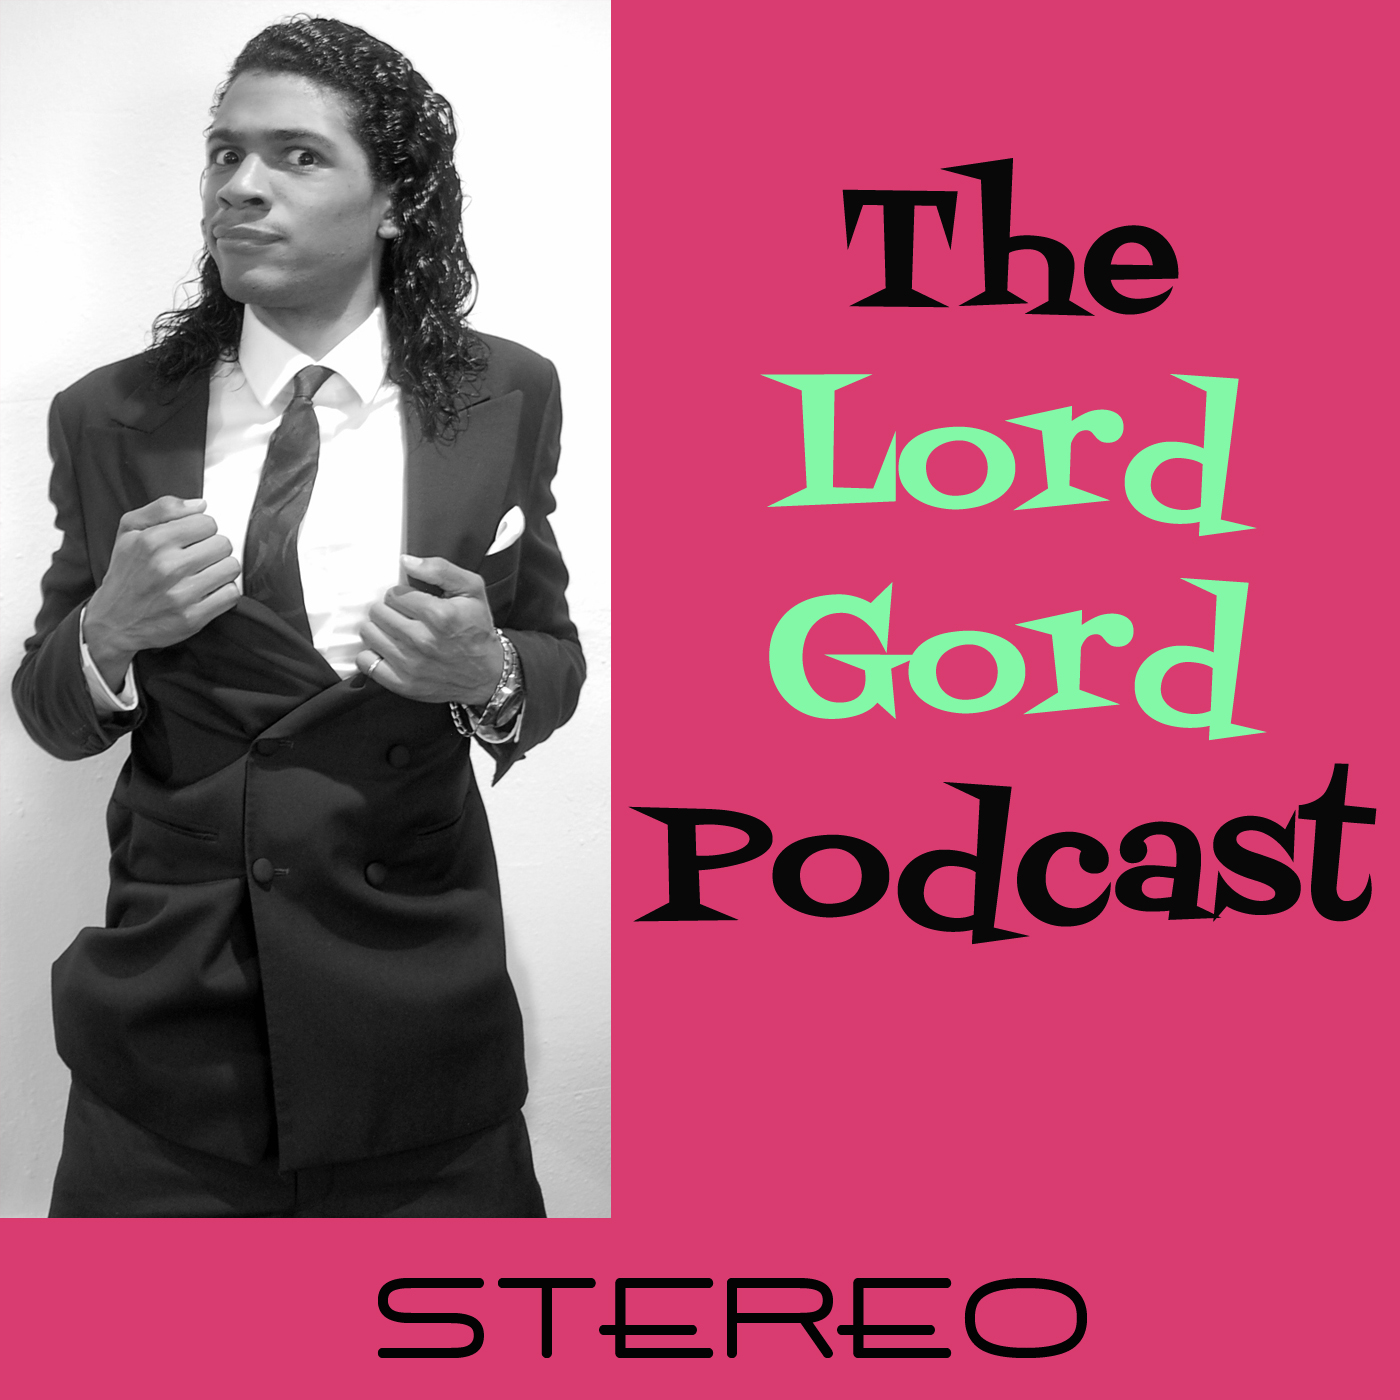 Lord Gord Podcast Tentative Cover2